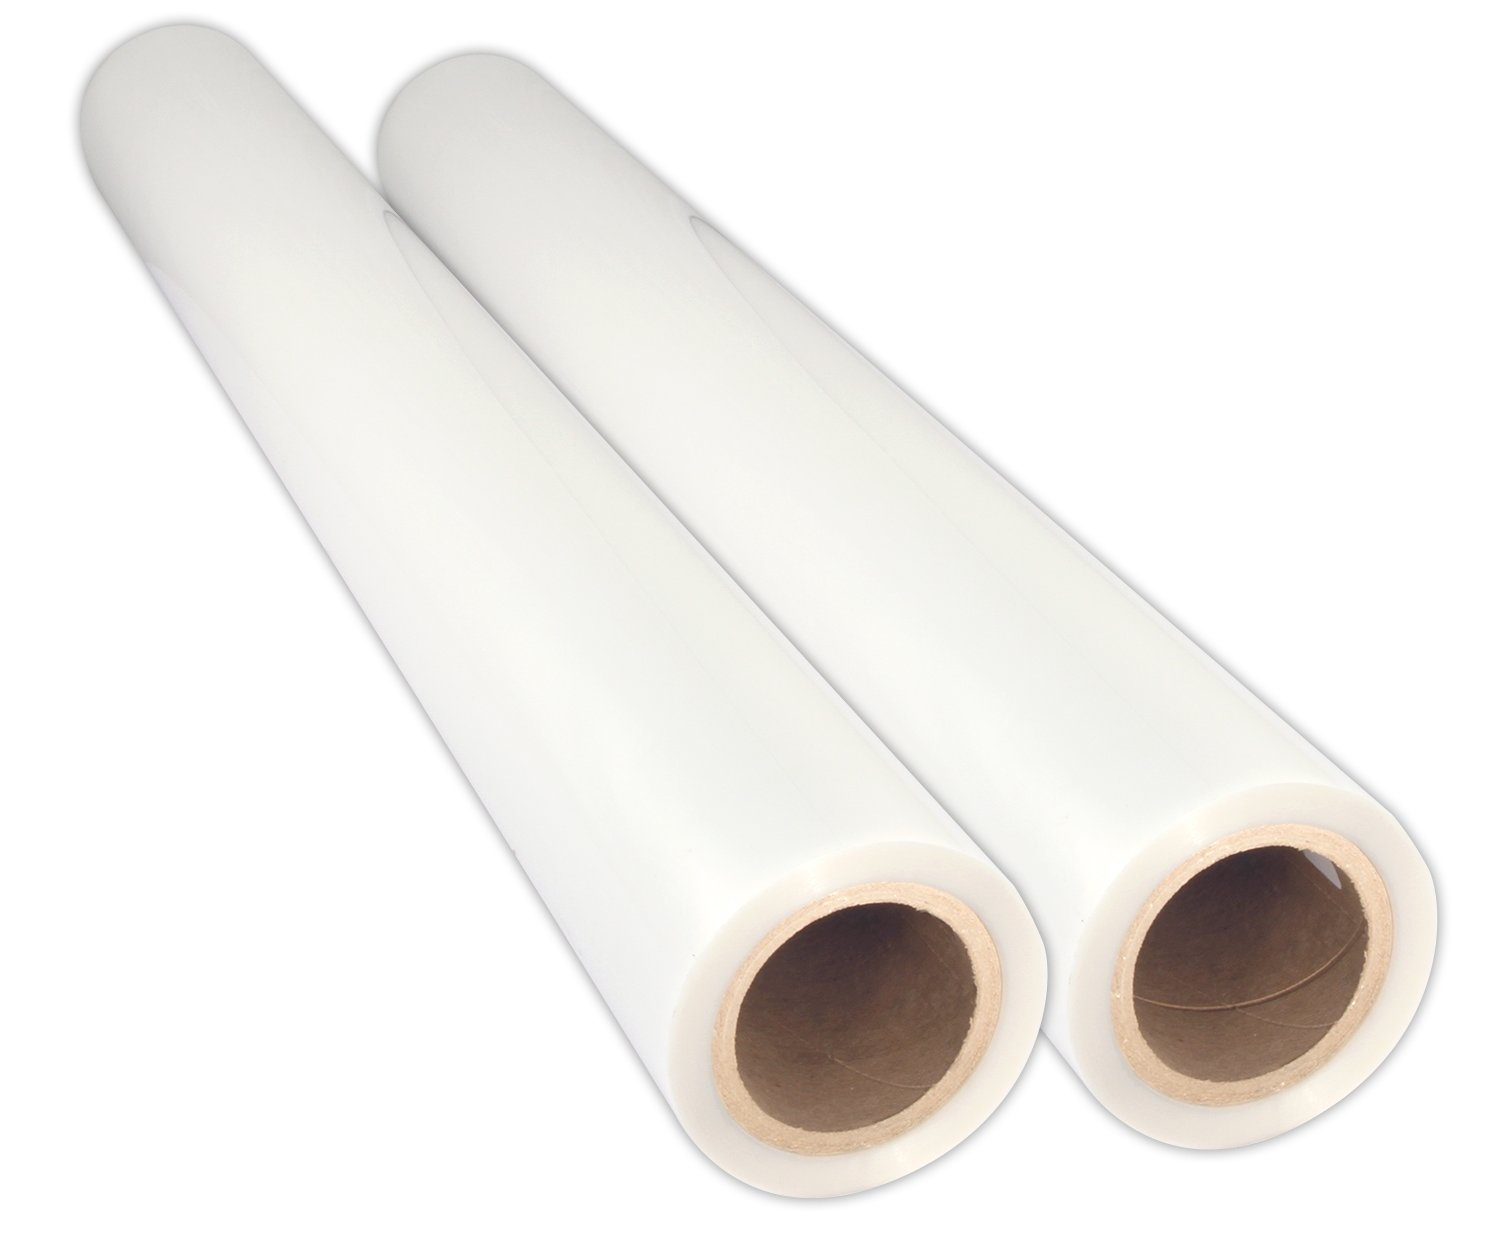 USI Premium Thermal Low-Temp EVA Roll Laminating Film, 3 Inch Core, 3 Mil, Wide Format, 40 Inches x 250 Feet, Clear, Gloss Finish, 2-Pack by USI